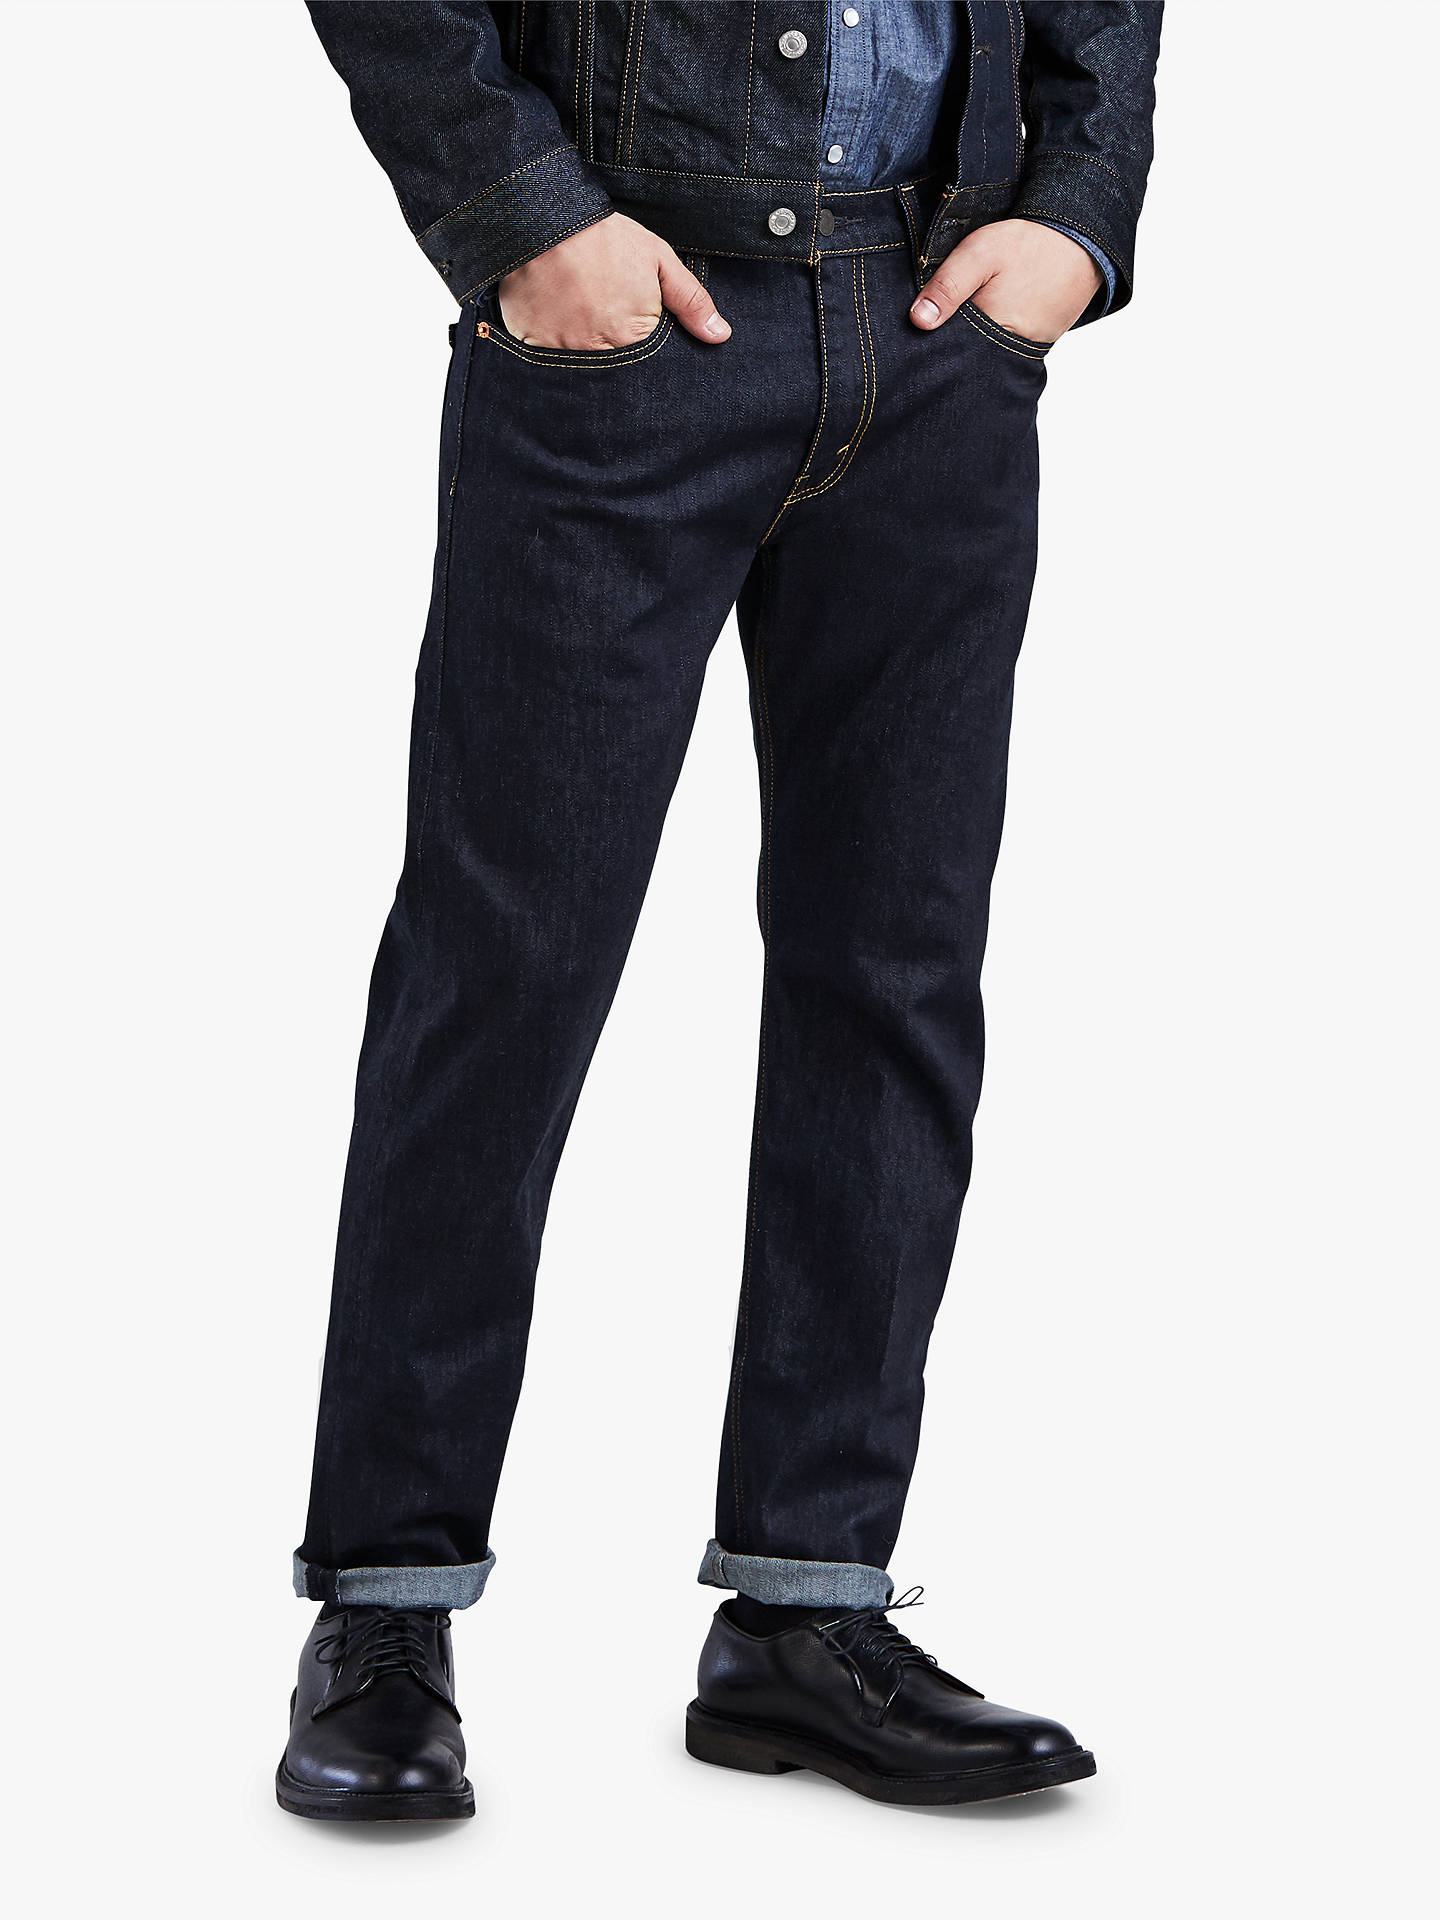 dd2c8c6758f Buy Levi's 502 Regular Tapered Jeans, Rock Cod, 34R Online at johnlewis. ...